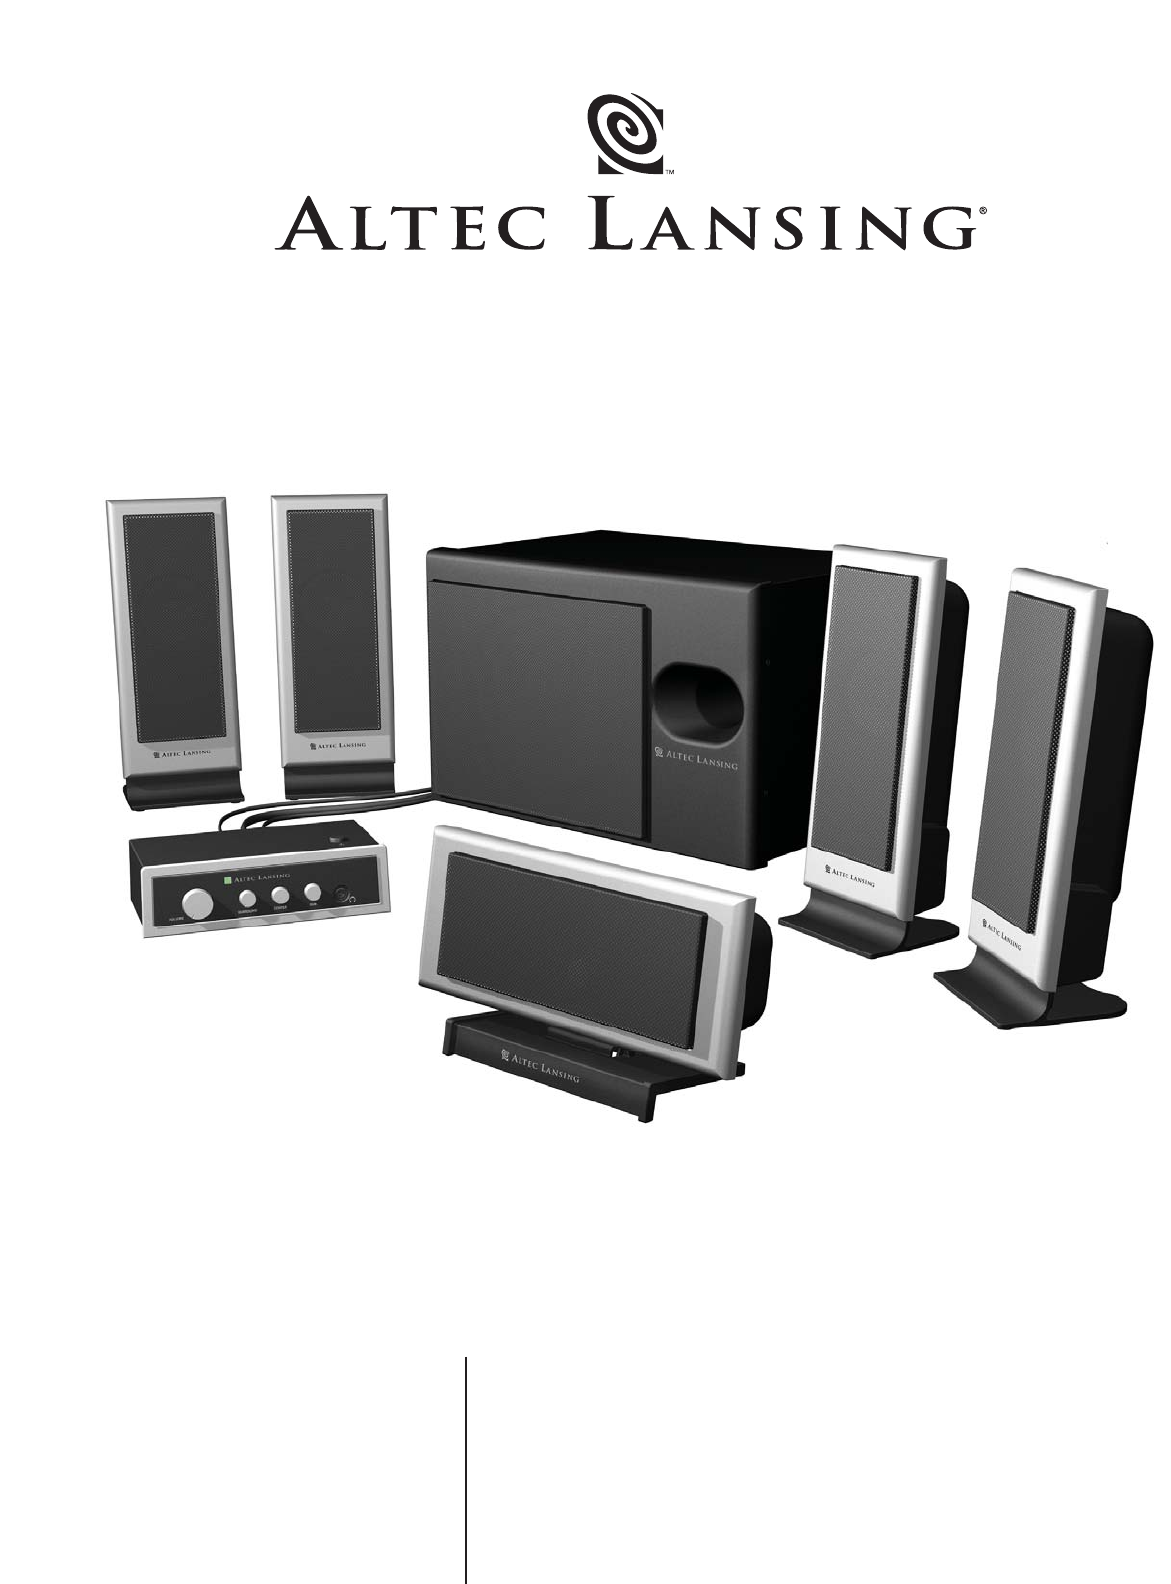 altec lansing speaker vs3151 user guide manualsonline com rh audio manualsonline com Altec Lansing Subwoofer Manual Altec Lansing Subwoofer Manual